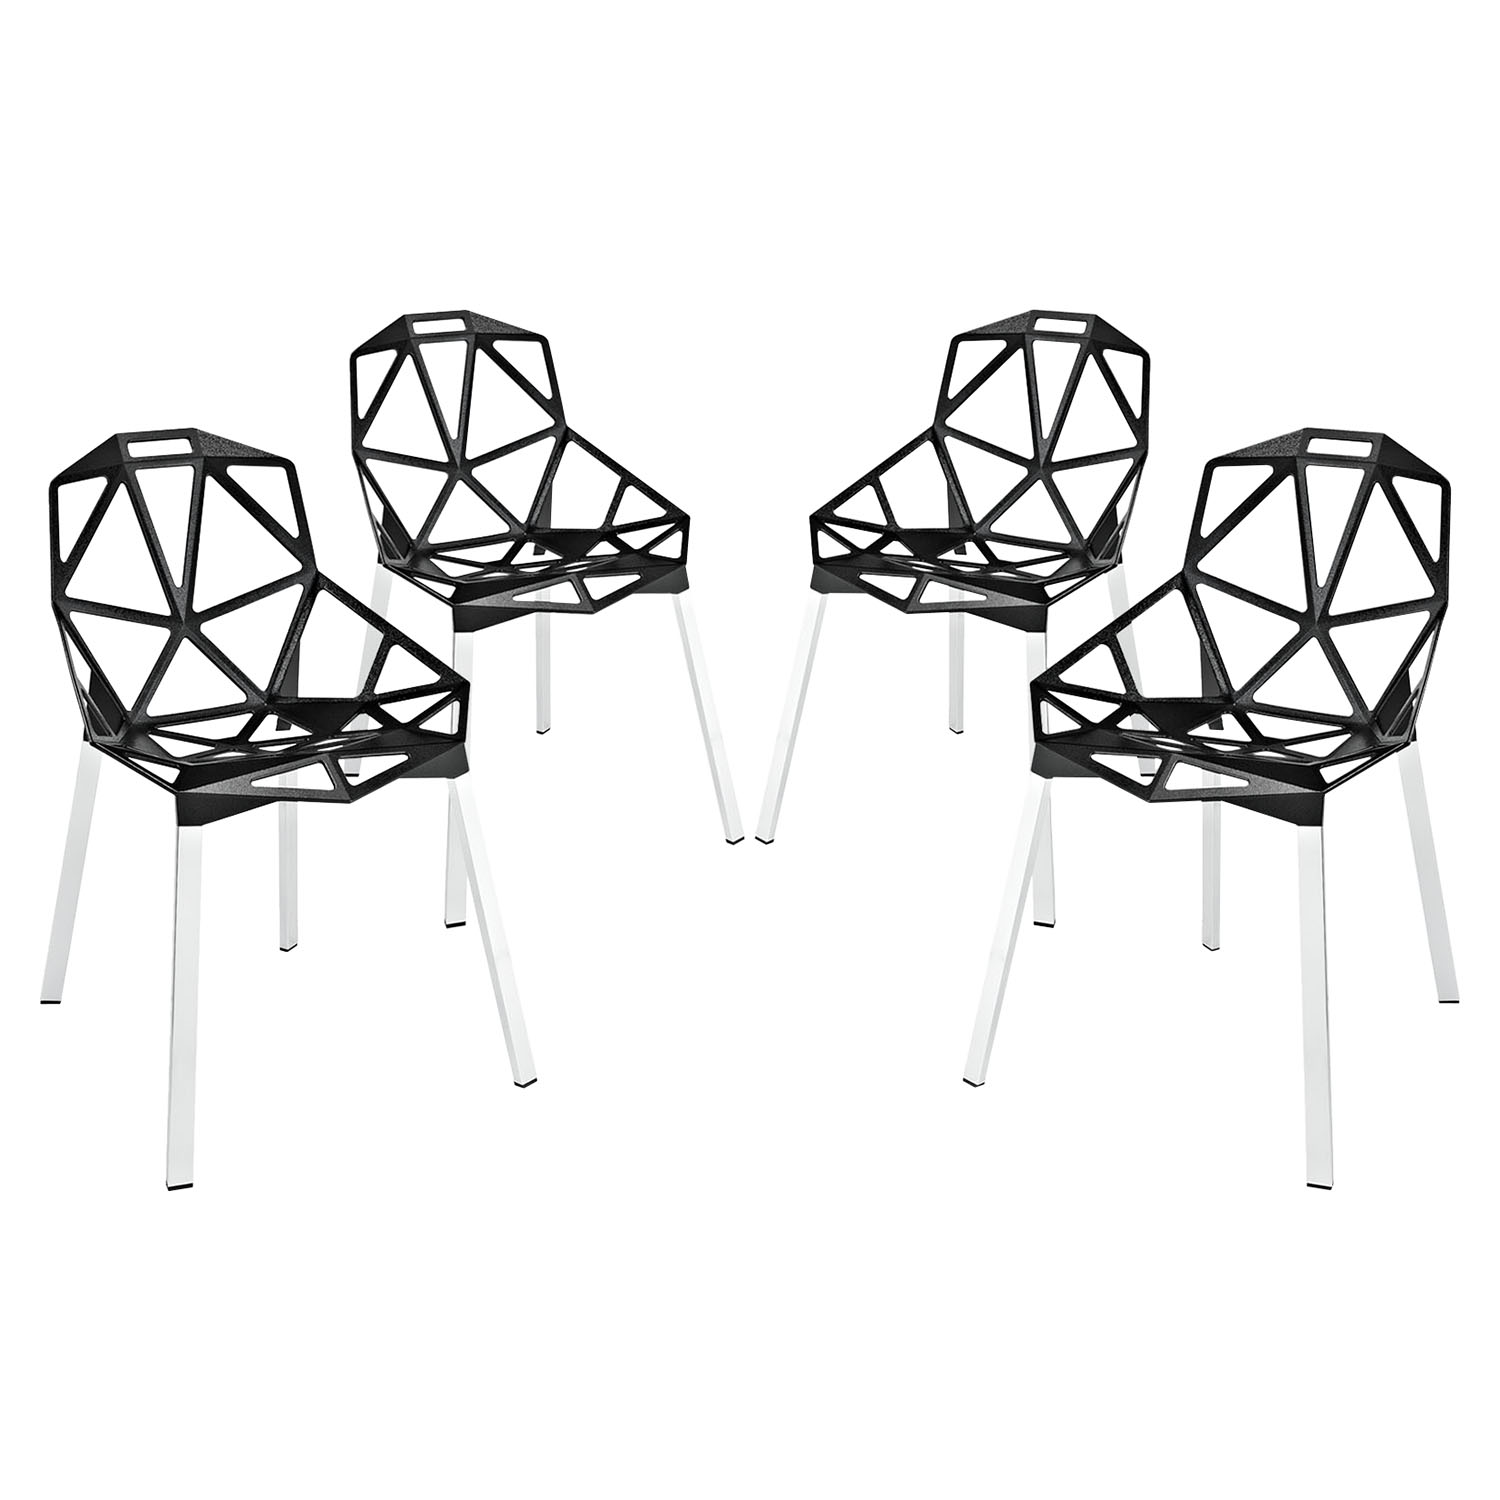 Connections Backrest Dining Chair - Black (Set of 4)